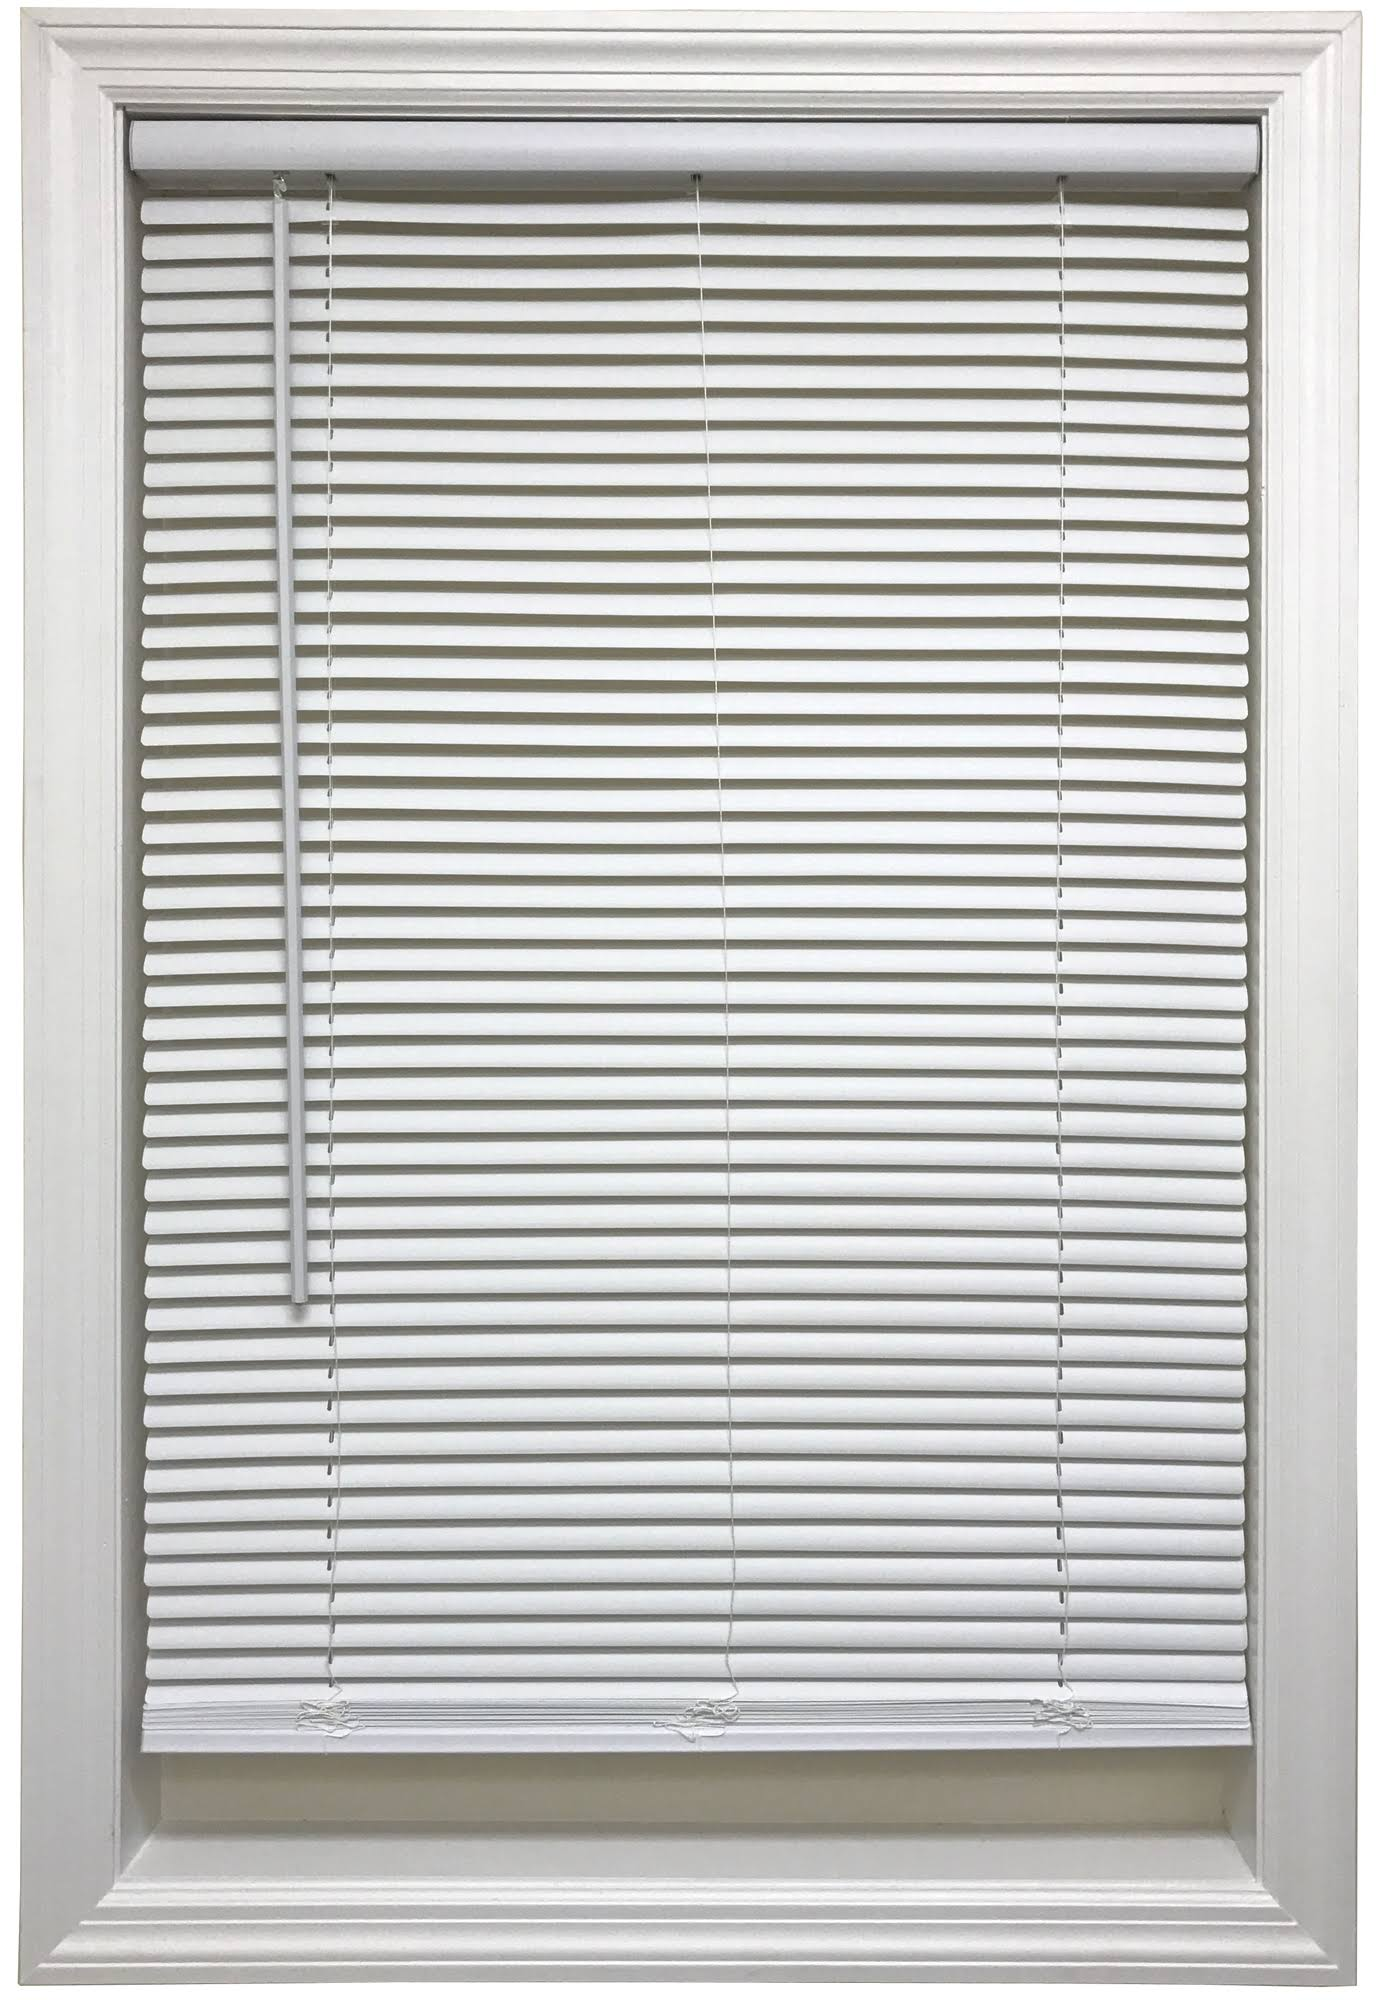 Cordless 1 inch Mini Blind, 31 inch Wide x 64 inch Long, White